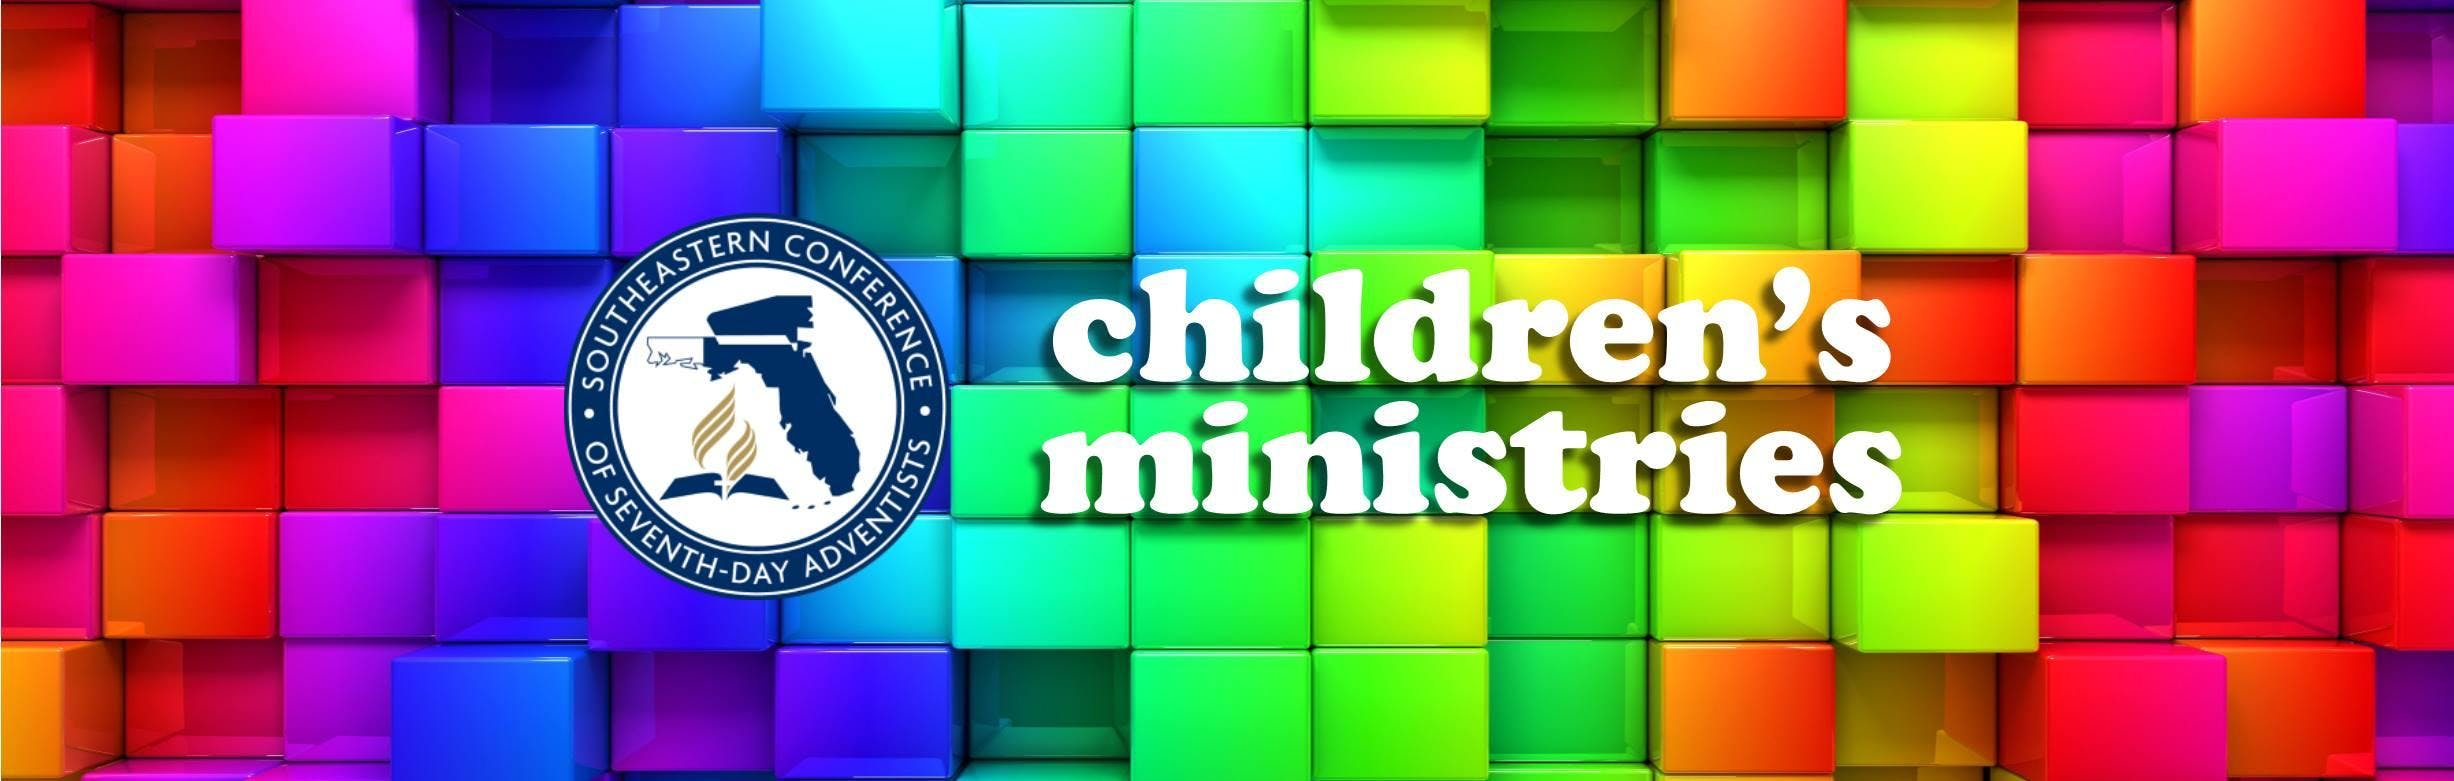 SECSDA Children's Ministries Certification- T